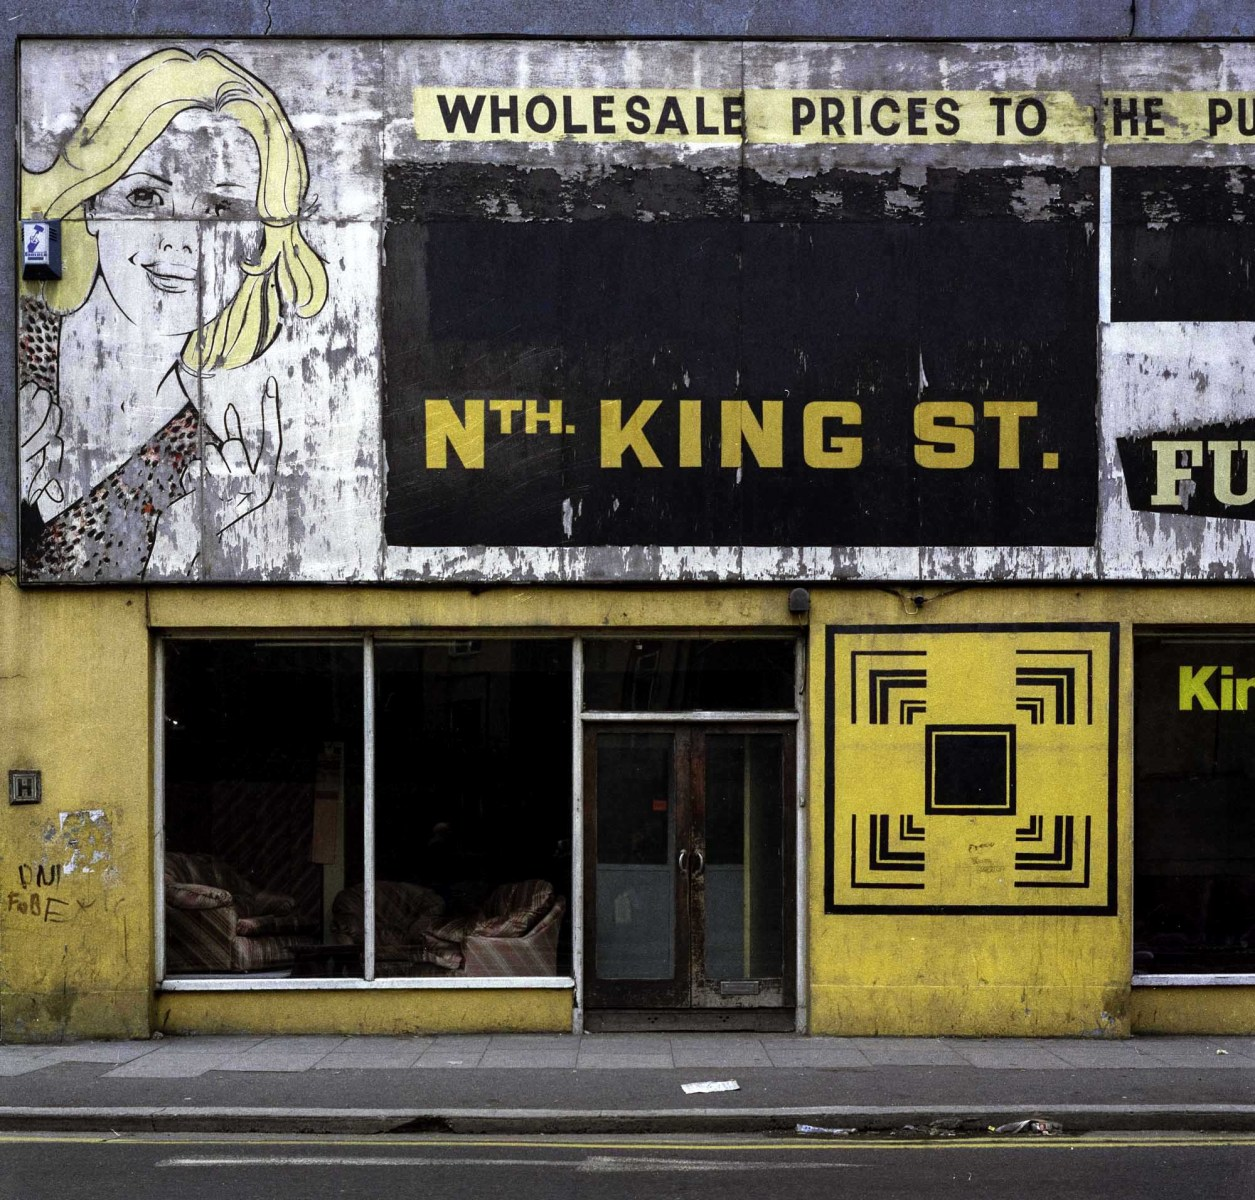 Wholesale Prices, North King Street, Dublin